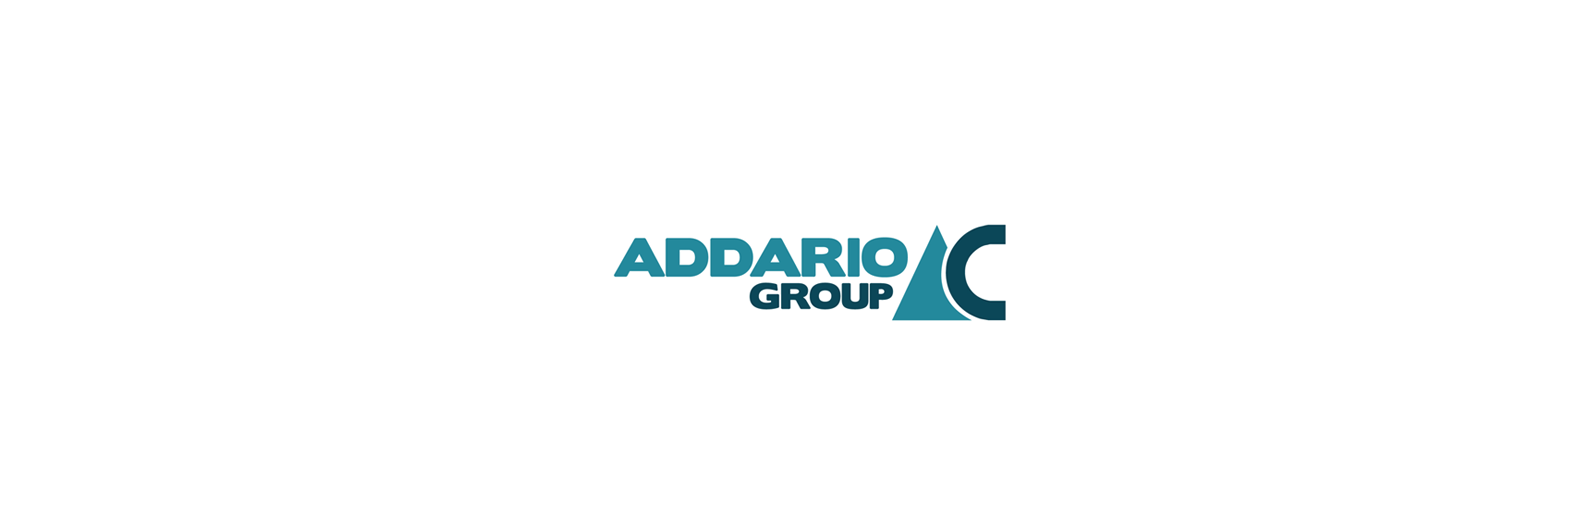 Addario Group: restyling logo e corporate image